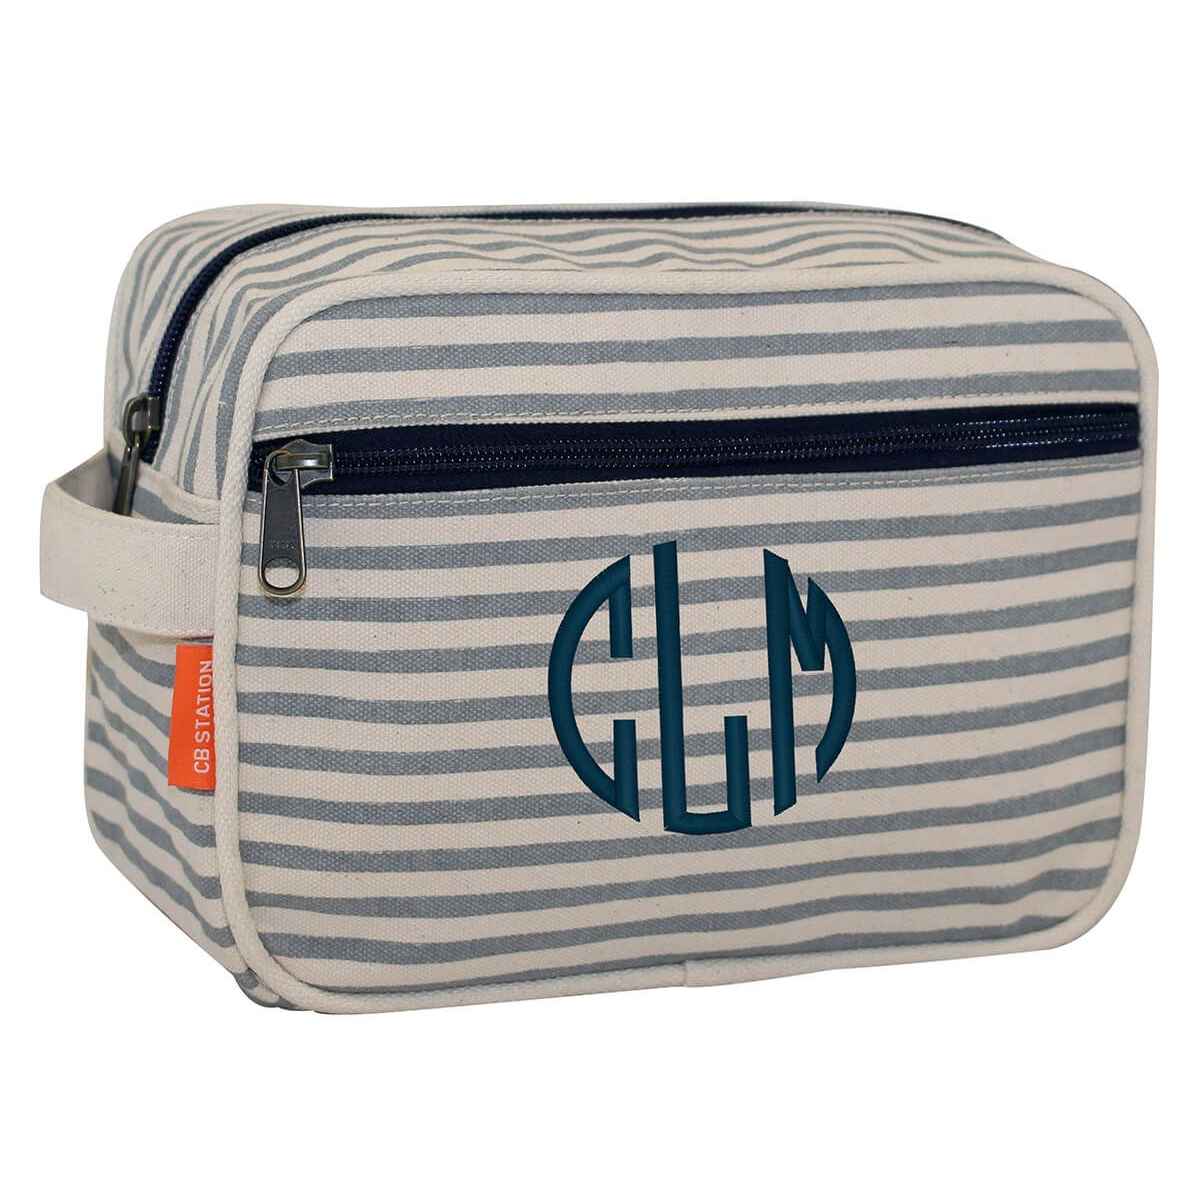 Personalized Camp Travel Bags